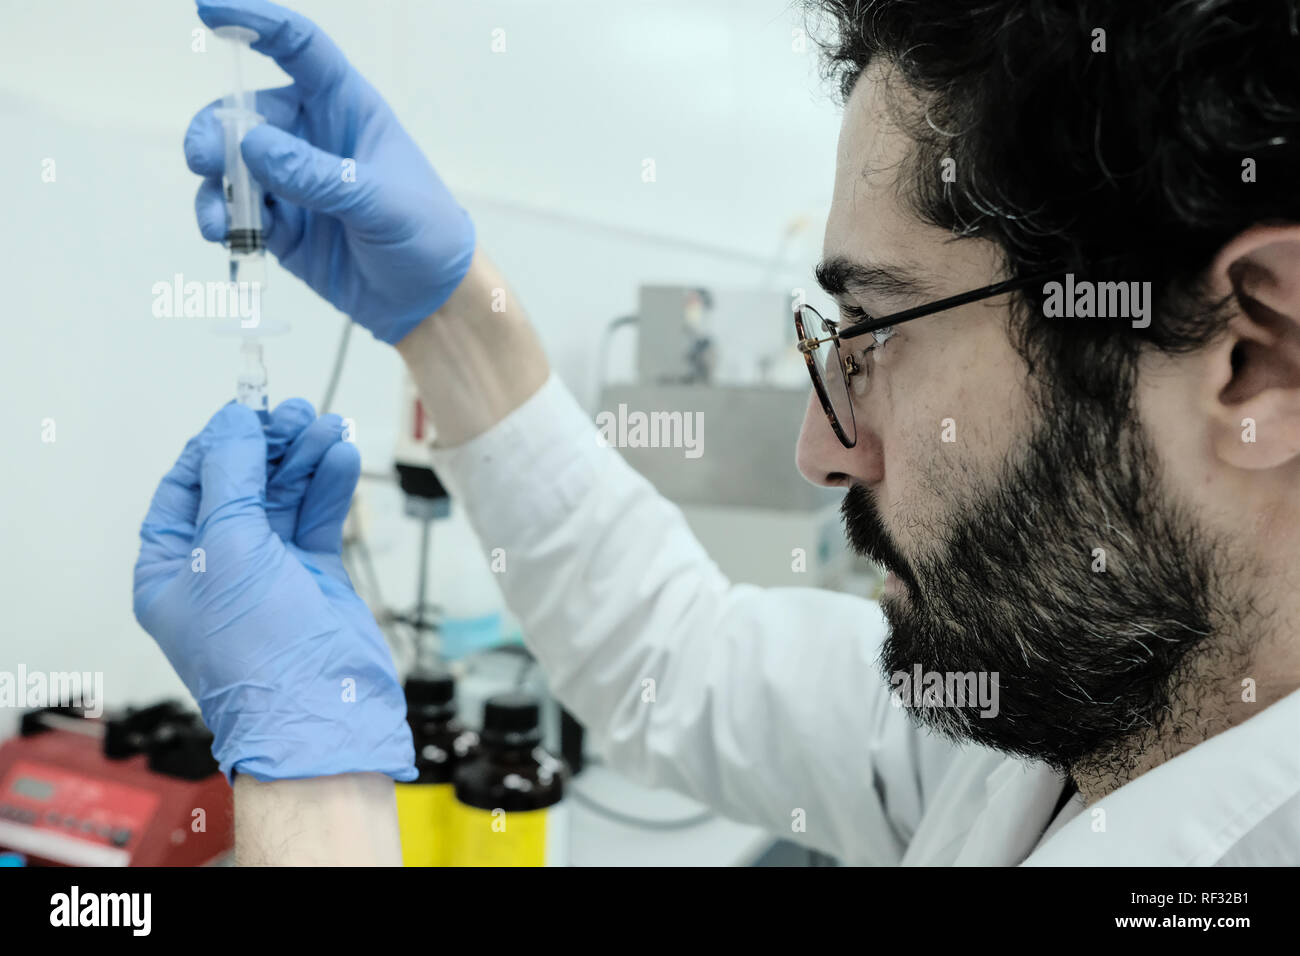 Lod, Israel. 23rd January, 2019. Panaxia Pharmaceutical Industries provides pharmaceutical grade smokeless Cannabis products and delivery systems for patients and physicians, modernizing the medical field utilizing the properties and benefits of medical Cannabis while boasting over 20 percent of the workforce dedicated to research and development. Israel is considered a global leader in medical cannabis research and innovation and is one of only three countries in the world where cannabis research is sponsored by the government. Credit: Nir Alon/Alamy Live News - Stock Image